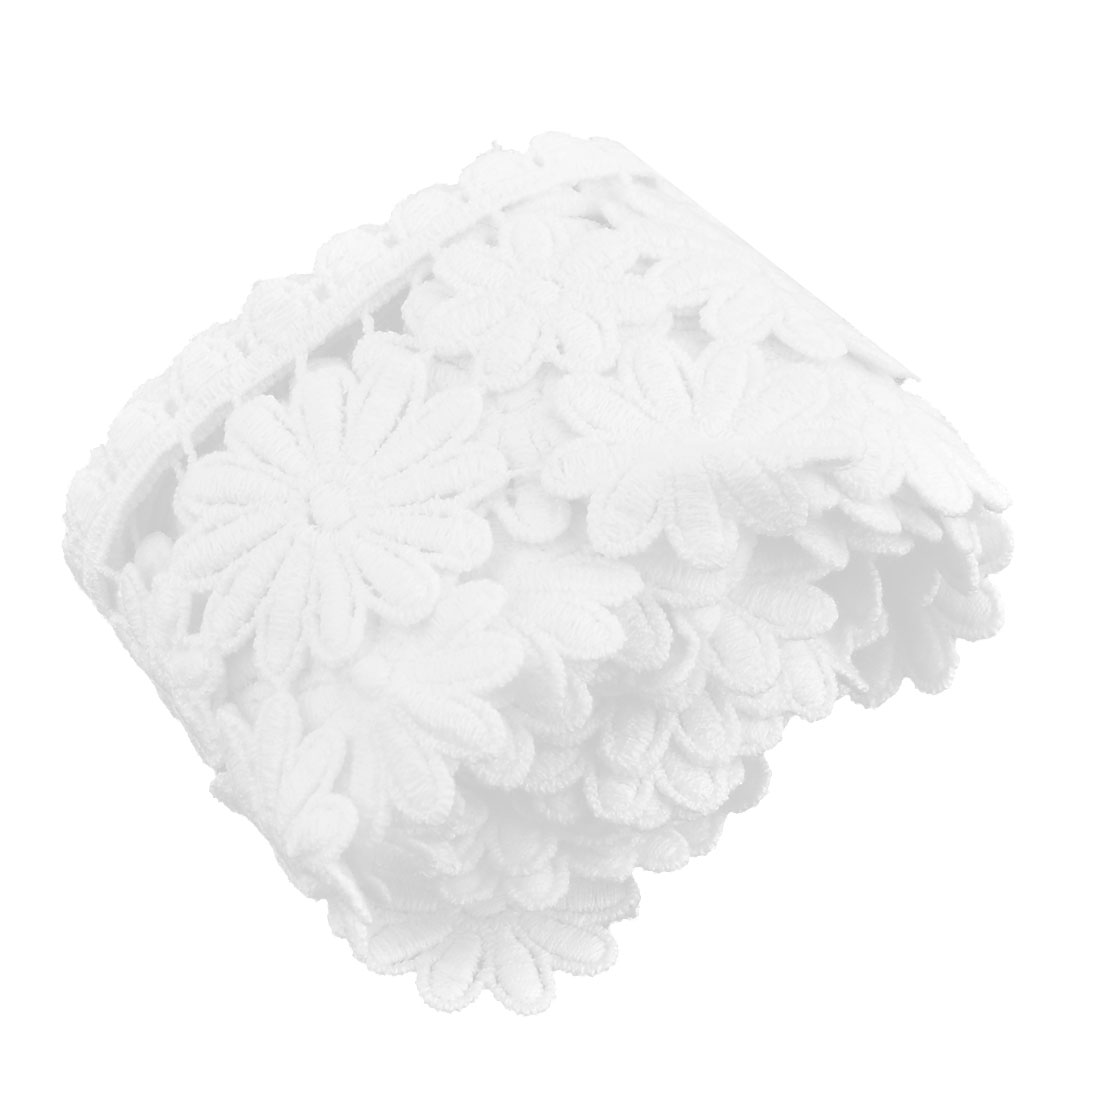 Family Polyester Fower Style Skirt Lace Trim Applique White 2.4 Inches Width